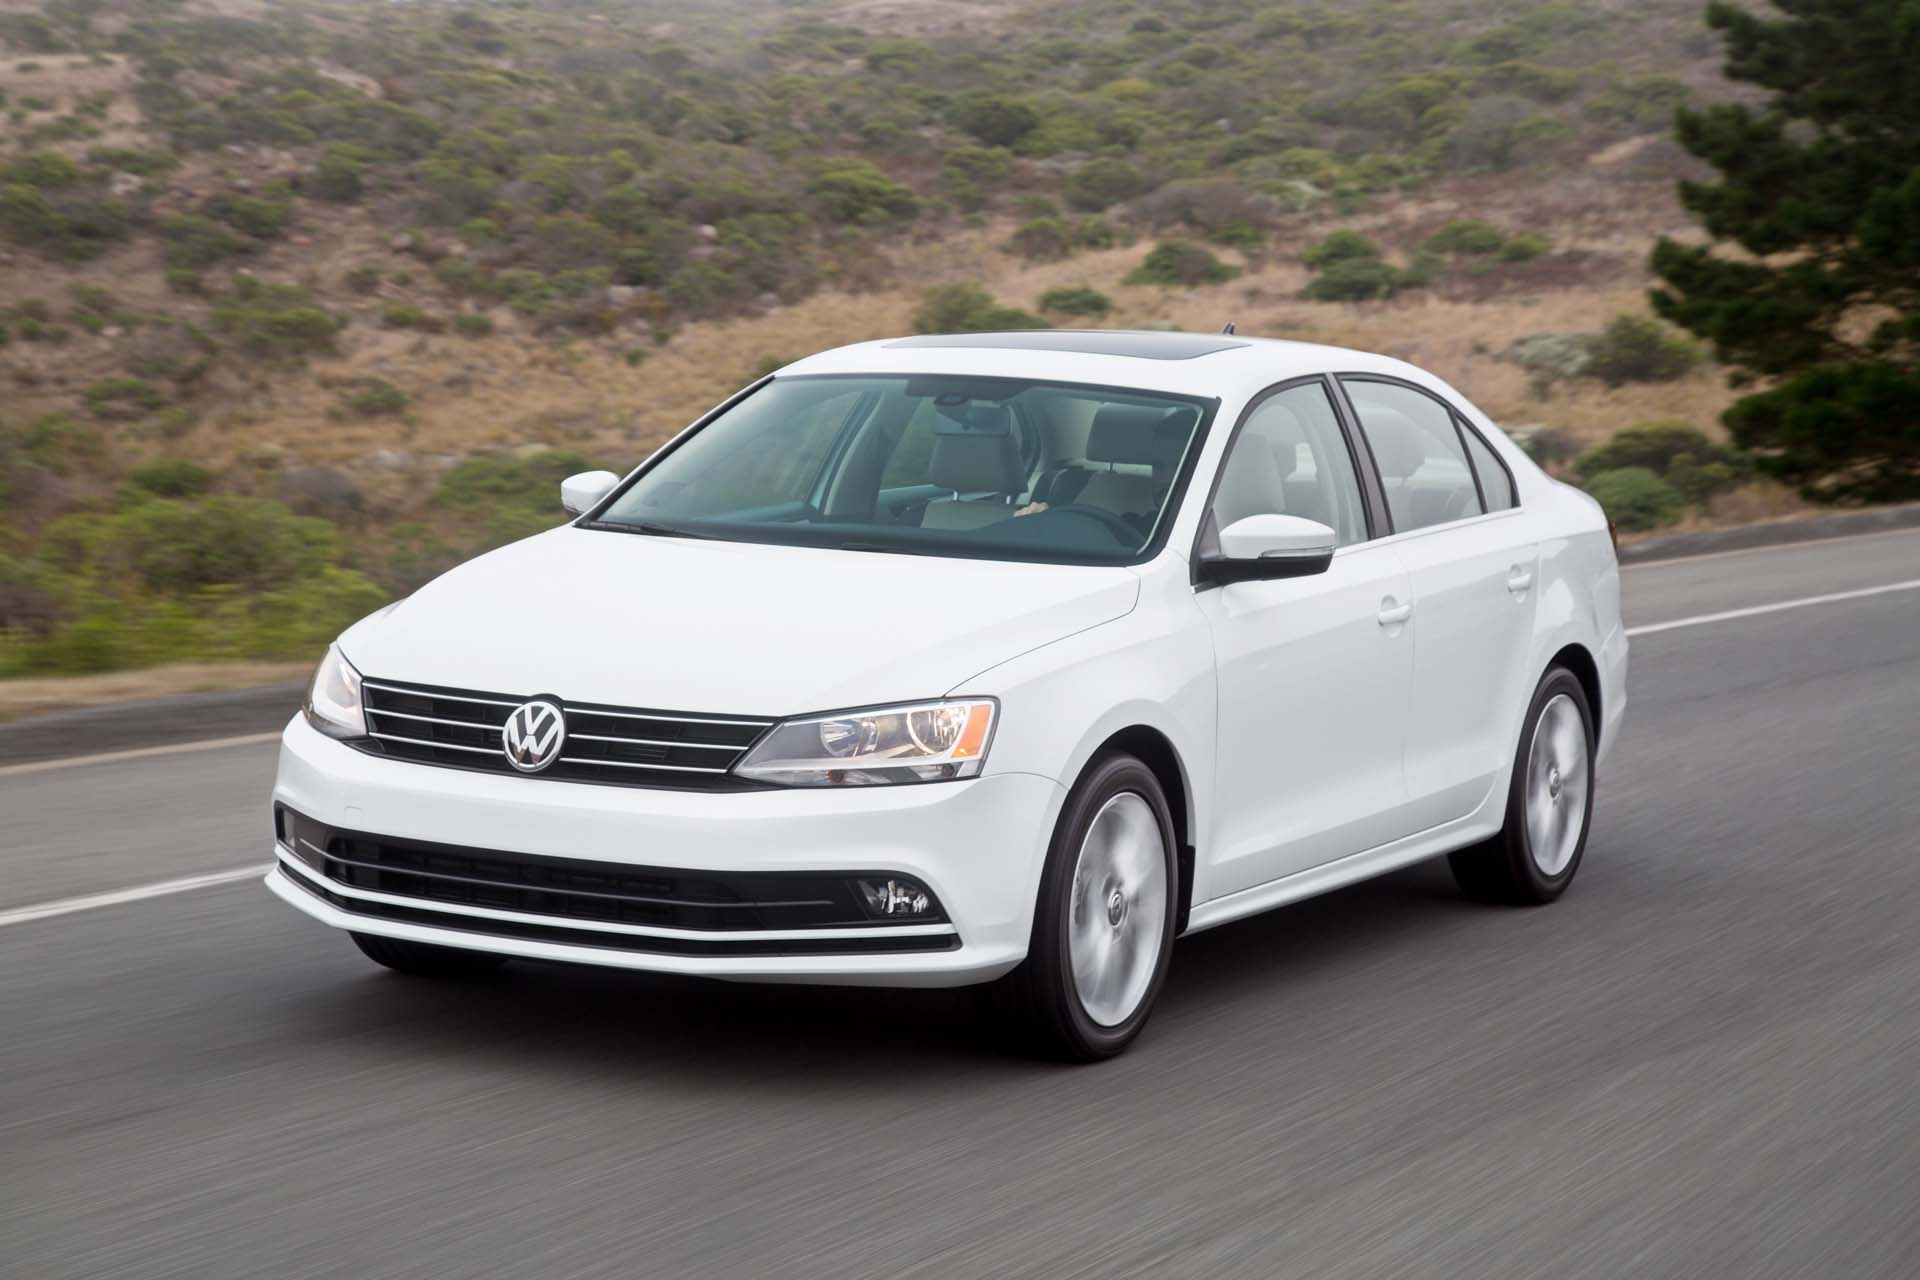 2017 Volkswagen Jetta (VW) Review, Ratings, Specs, Prices ...